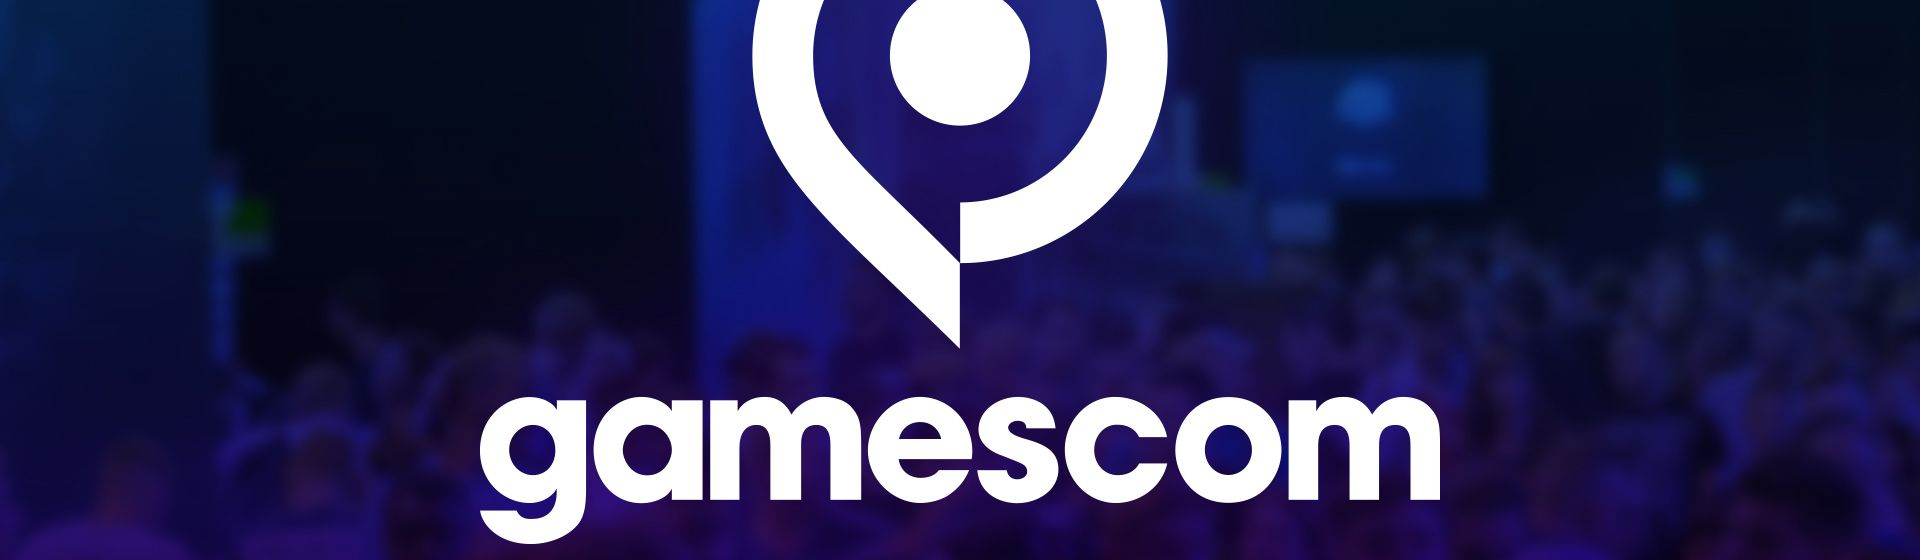 Gamescom 2020: datas, onde assistir e o que esperar do evento